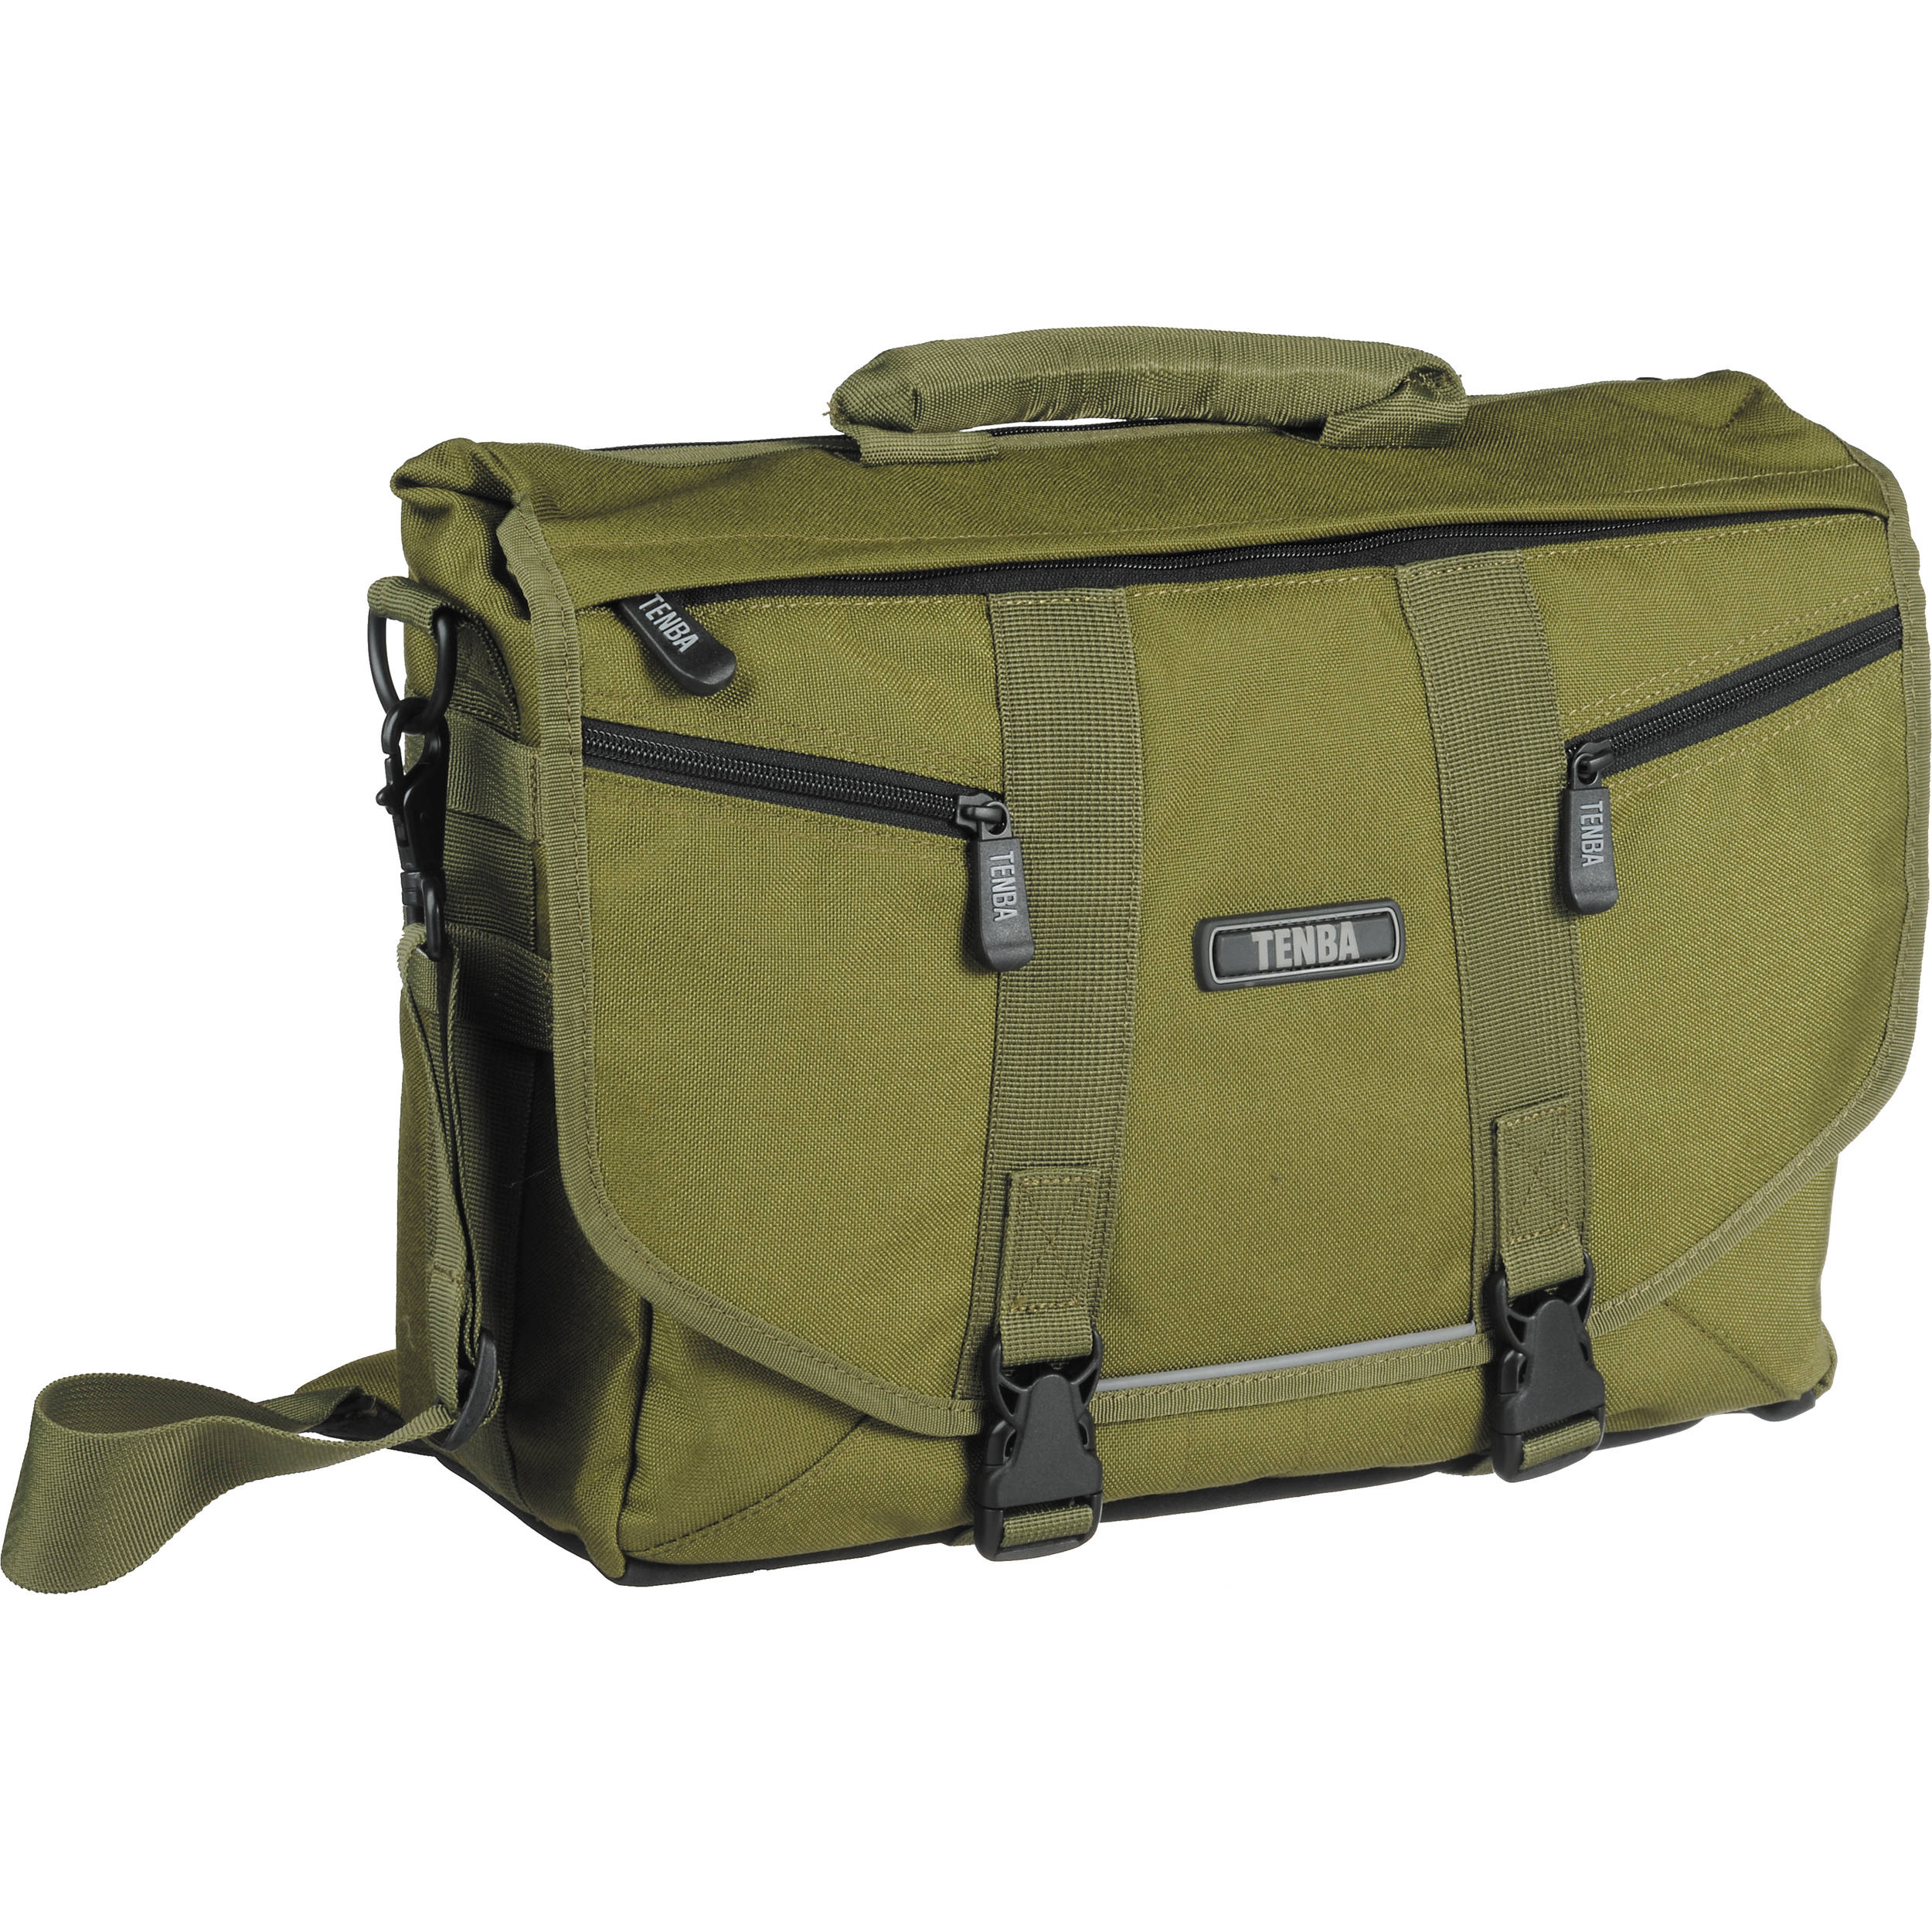 Tenba Messenger: Small Photo/Laptop Bag (Olive Green) 638-222